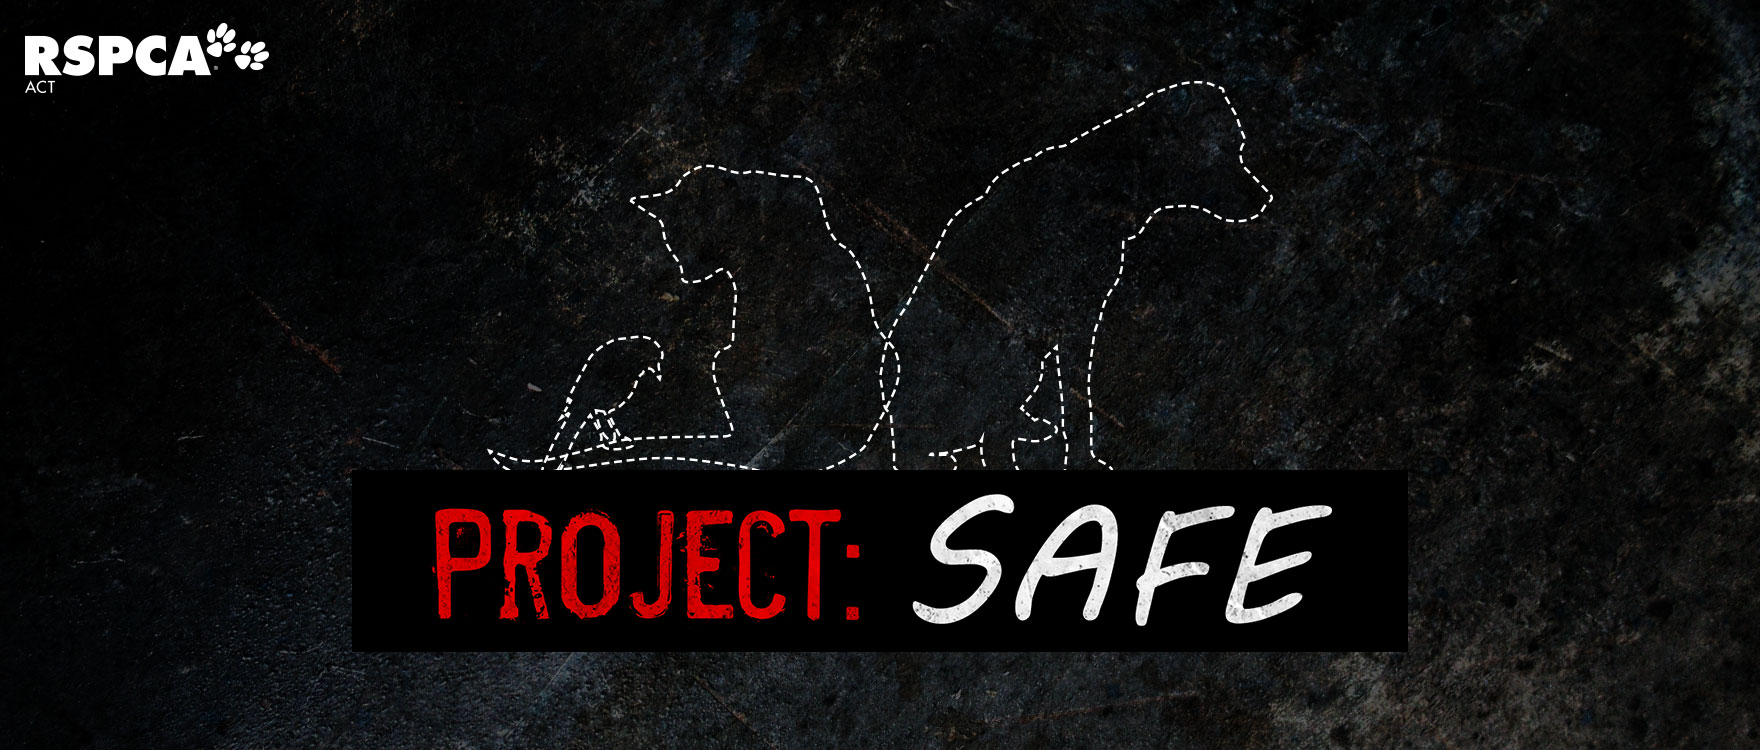 Can you help us support Project SAFE?